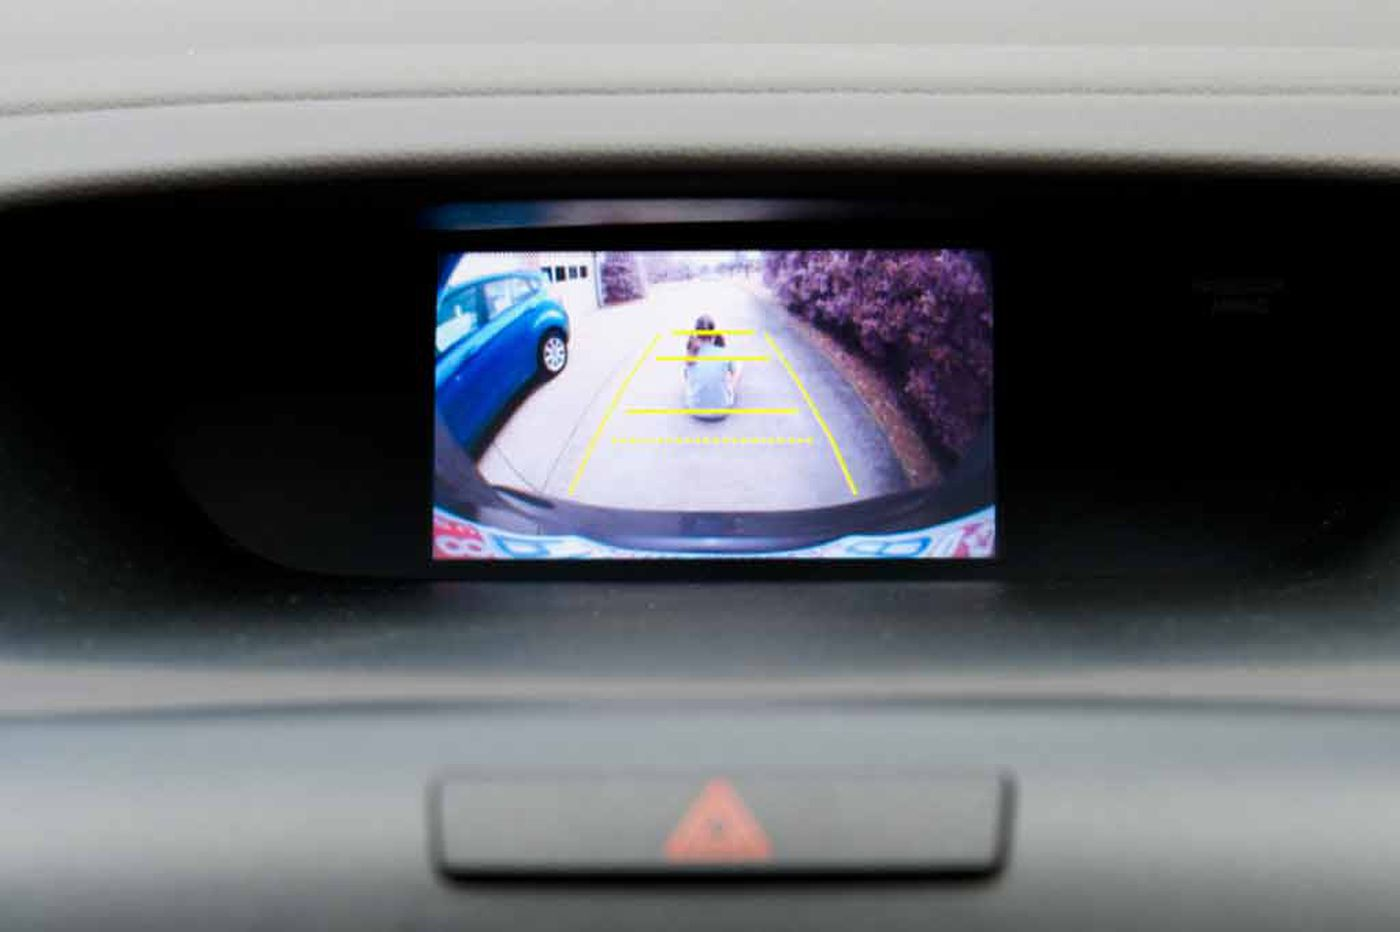 No back-up camera on your car? Add one